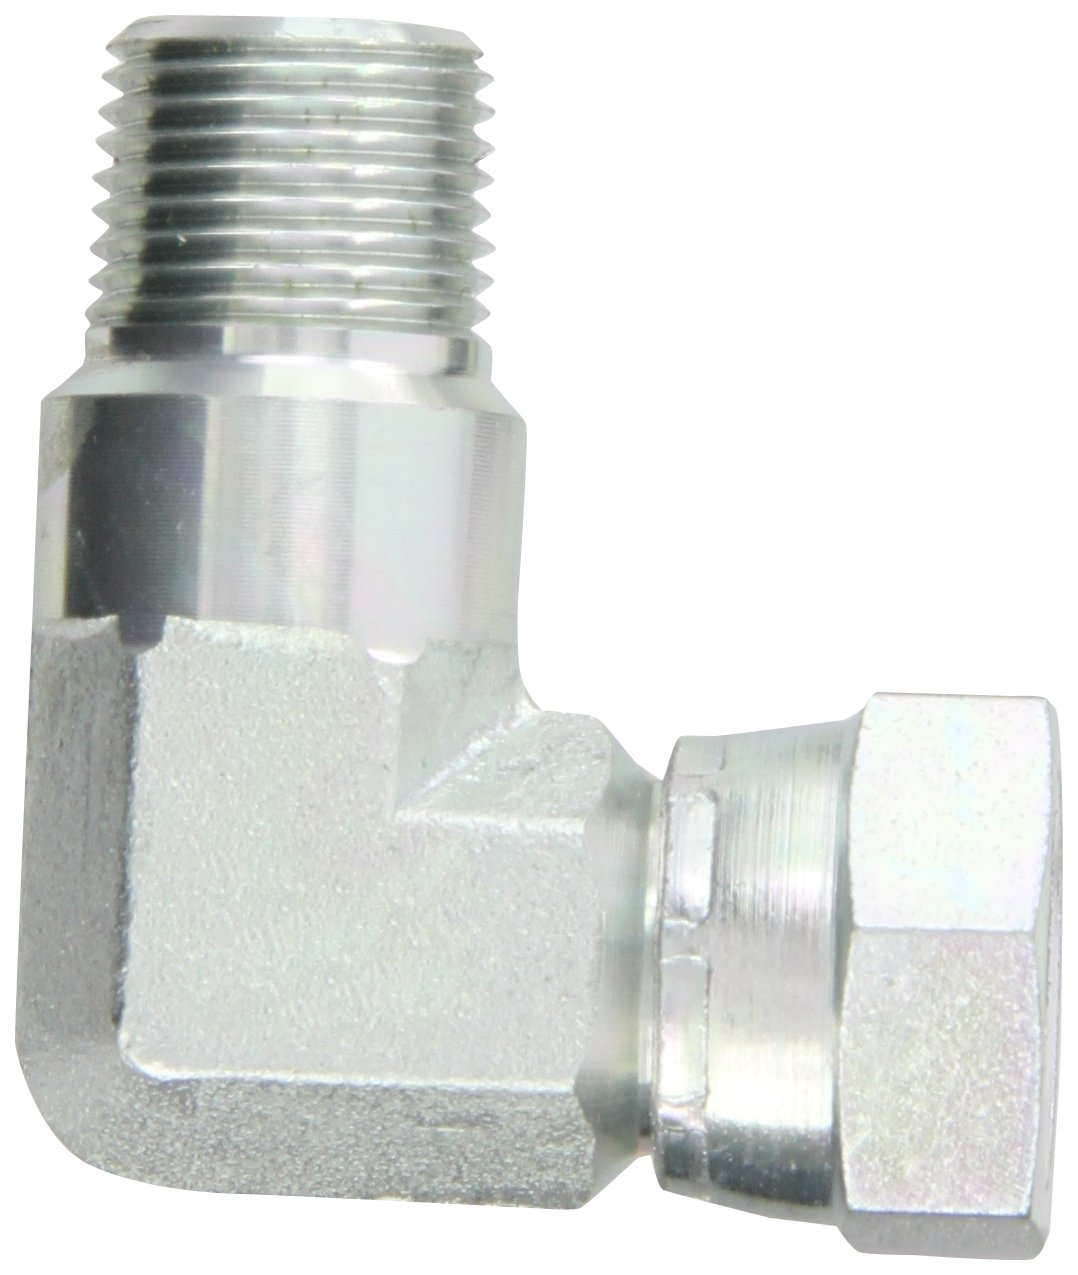 Eaton Aeroquip 2047-6-6S Steel Pipe Fitting 90 Degree Elbow 3//8 NPSM Female x 3//8 NPT Male